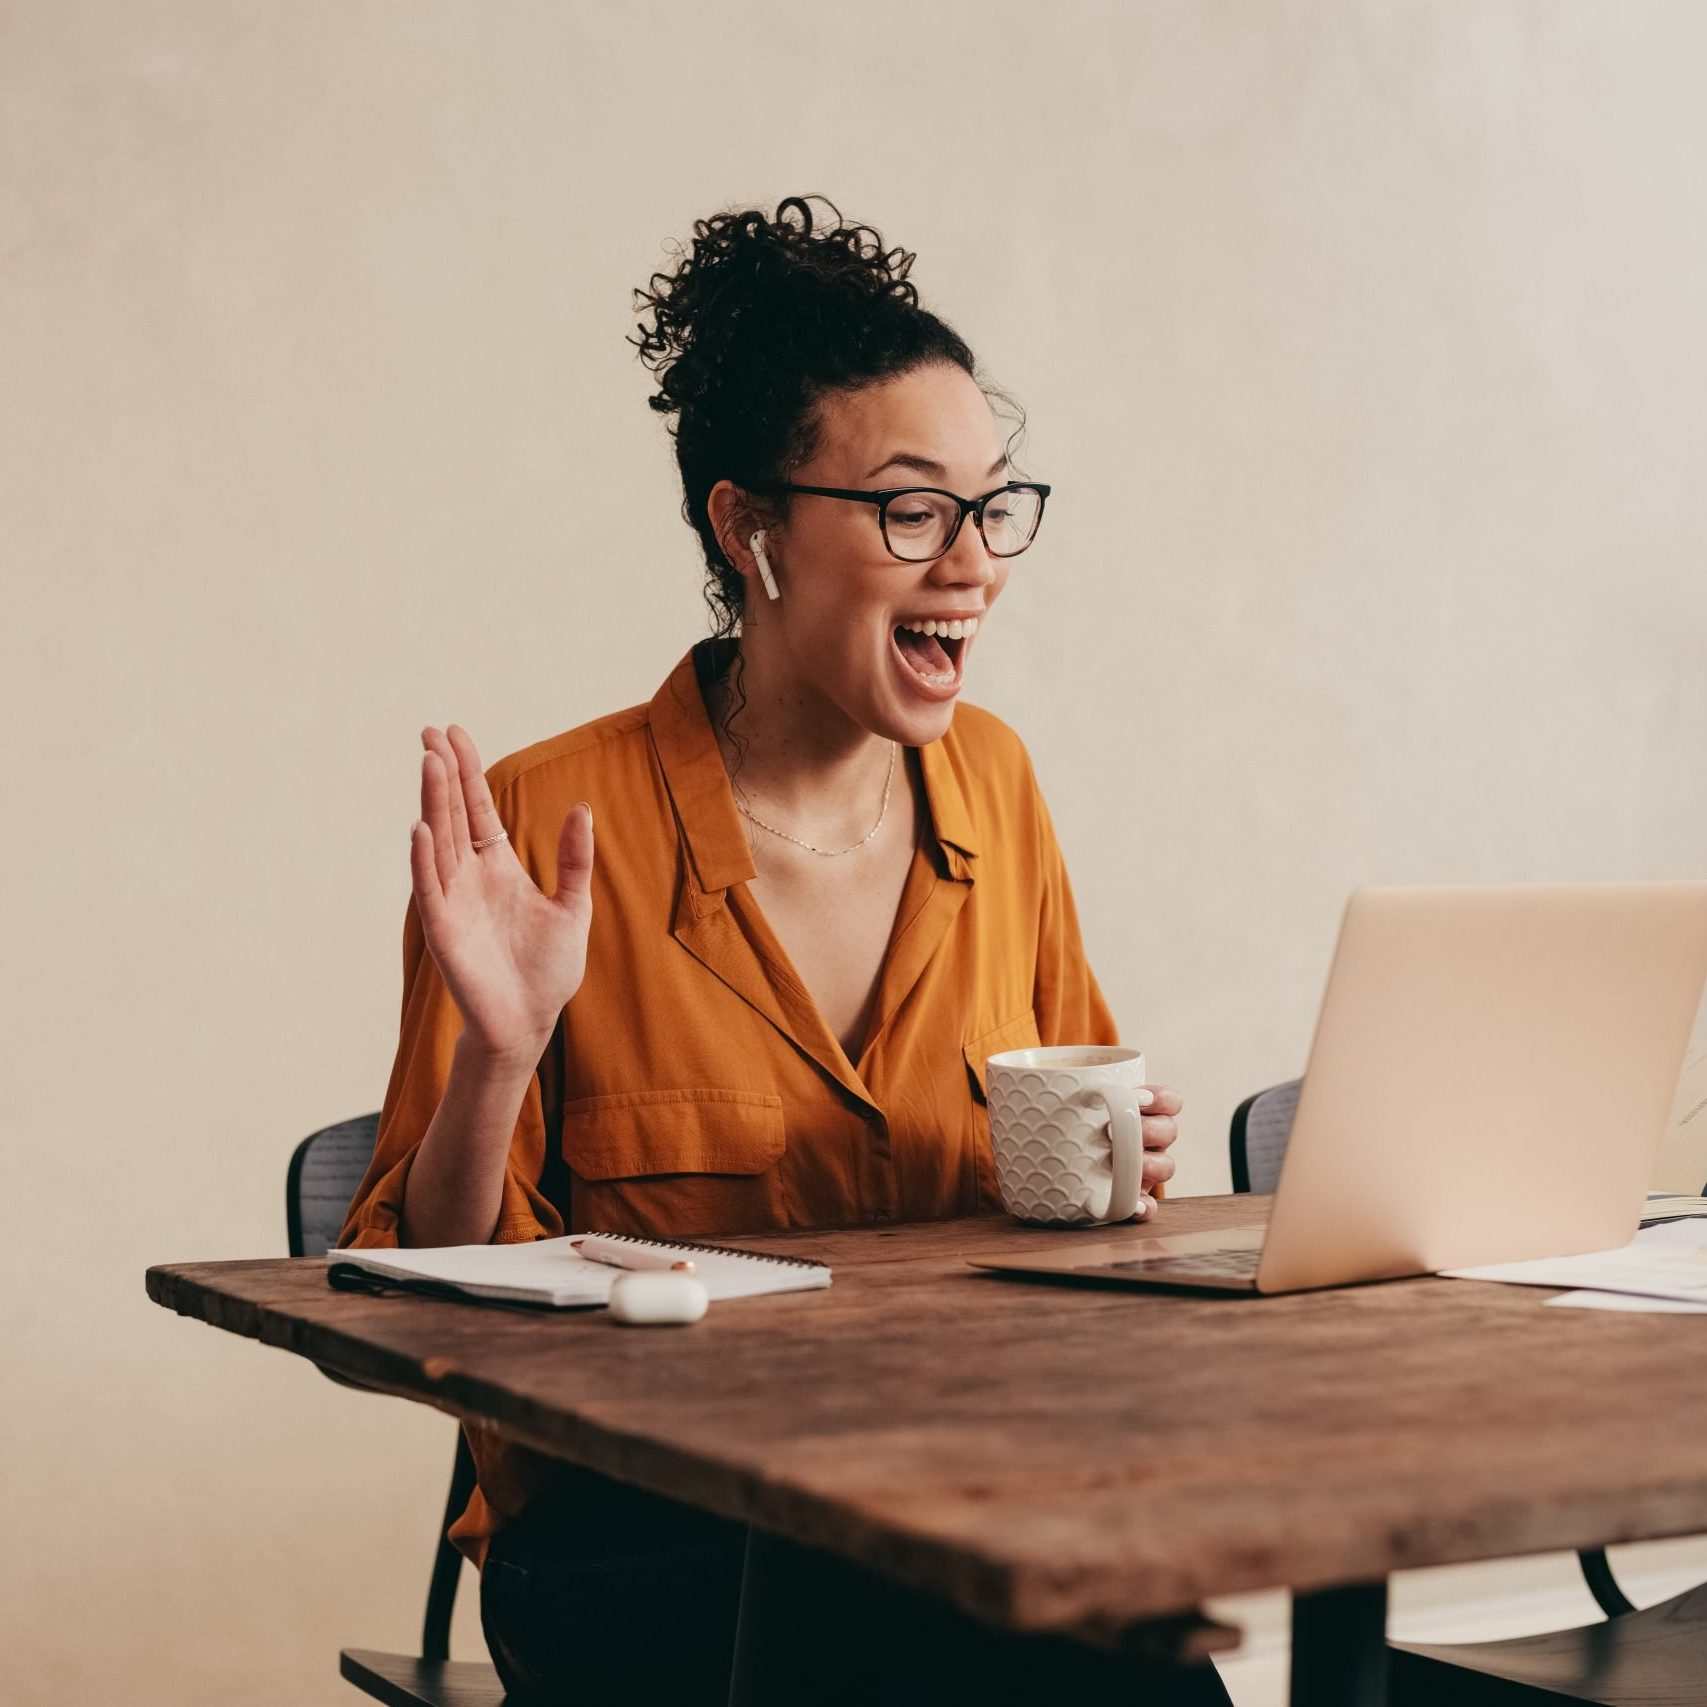 Young woman greeting colleagues on a video call. Business woman on a video conference call working from home.